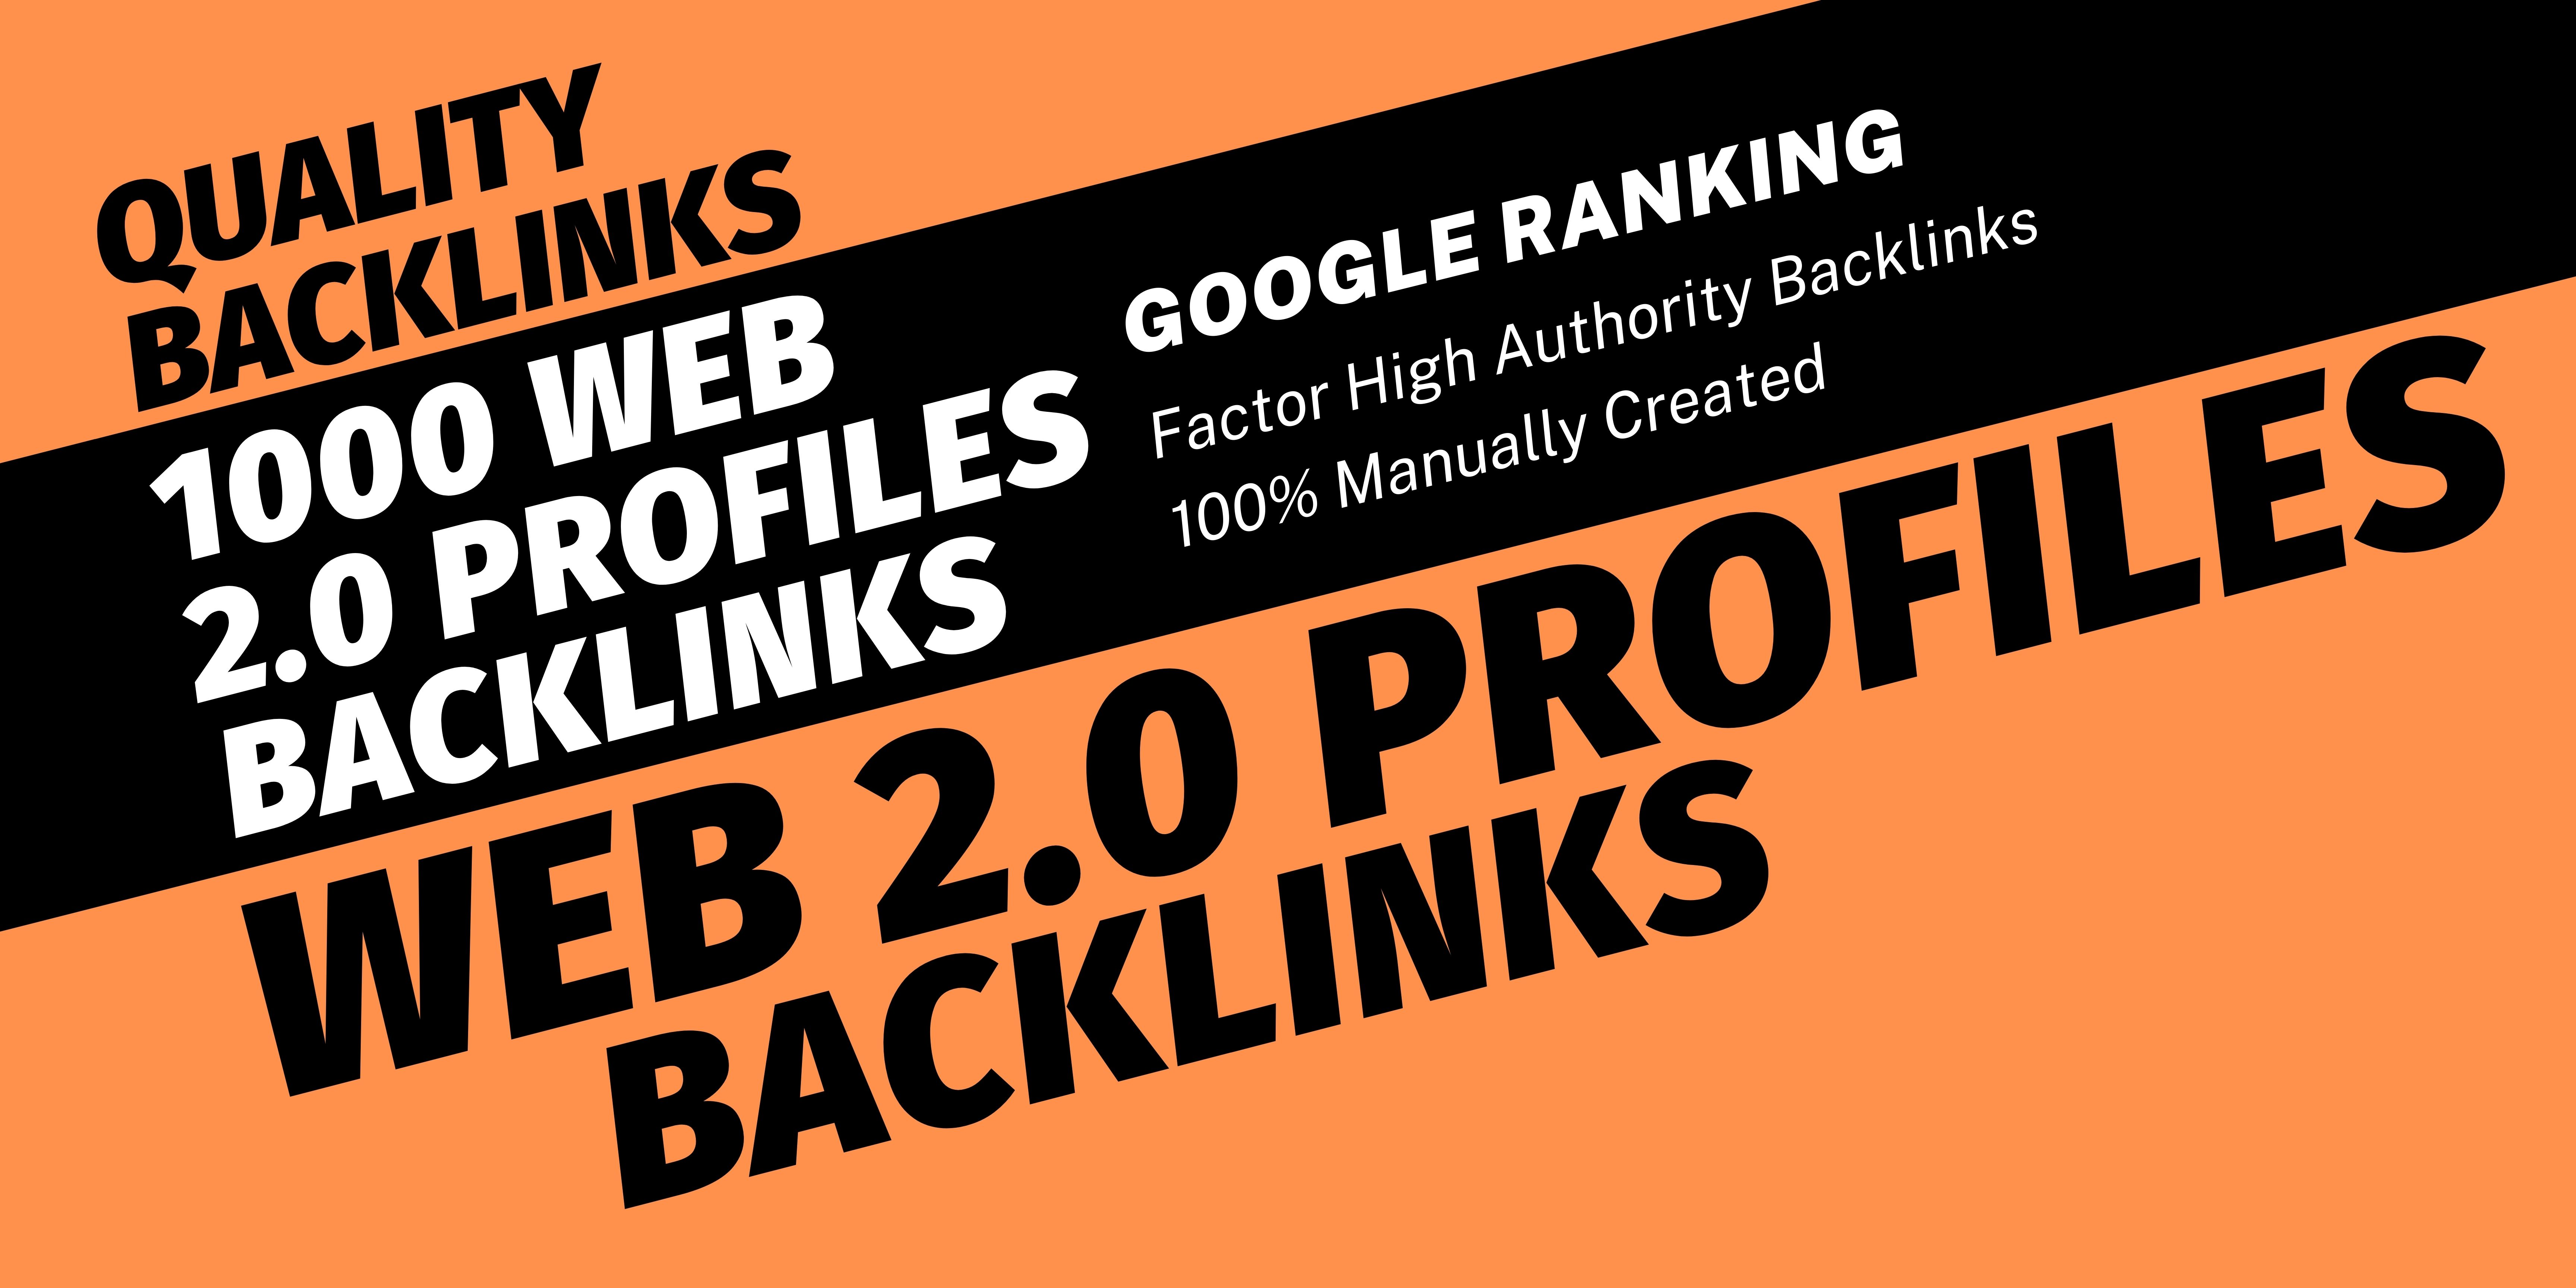 Get 350 WEB 2.0 PROFILE BACKLINKS HIGH AUTHORITY